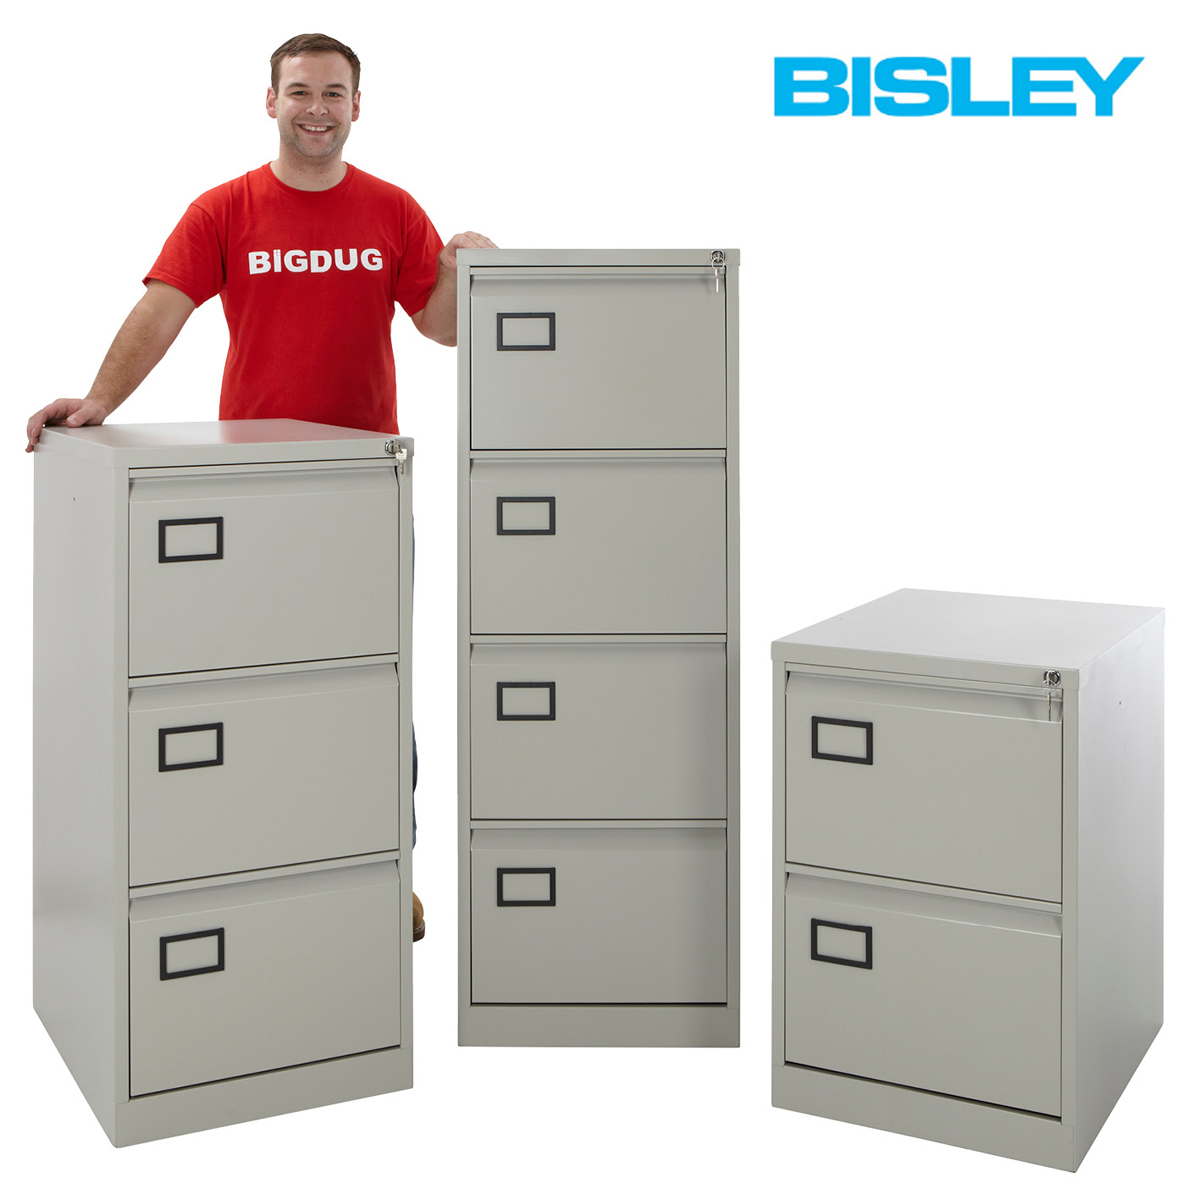 Bisley Contract Filing Cabinets 2, 3 & 4 Drawers Foolscap. Express Delivery